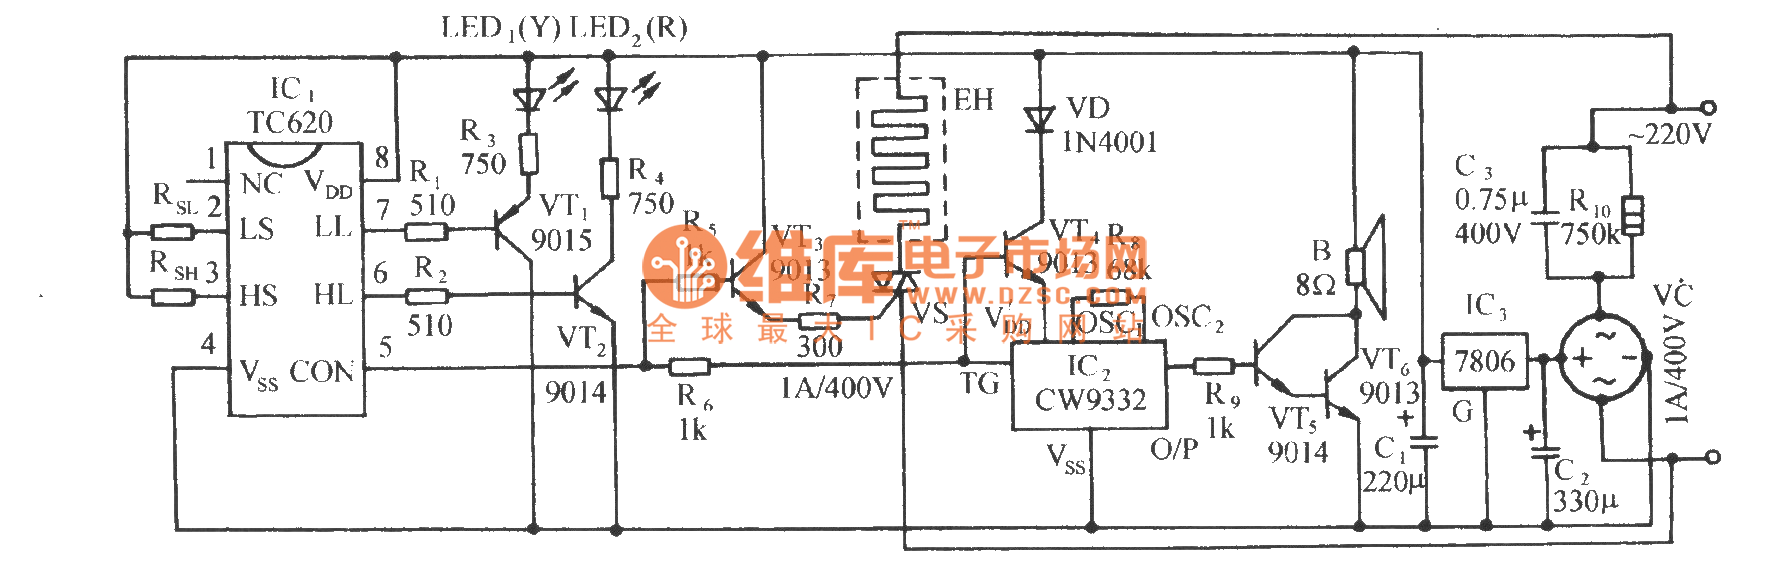 Tc620 Temperature Sensing Automatic Heating Control And Circuit Diagram